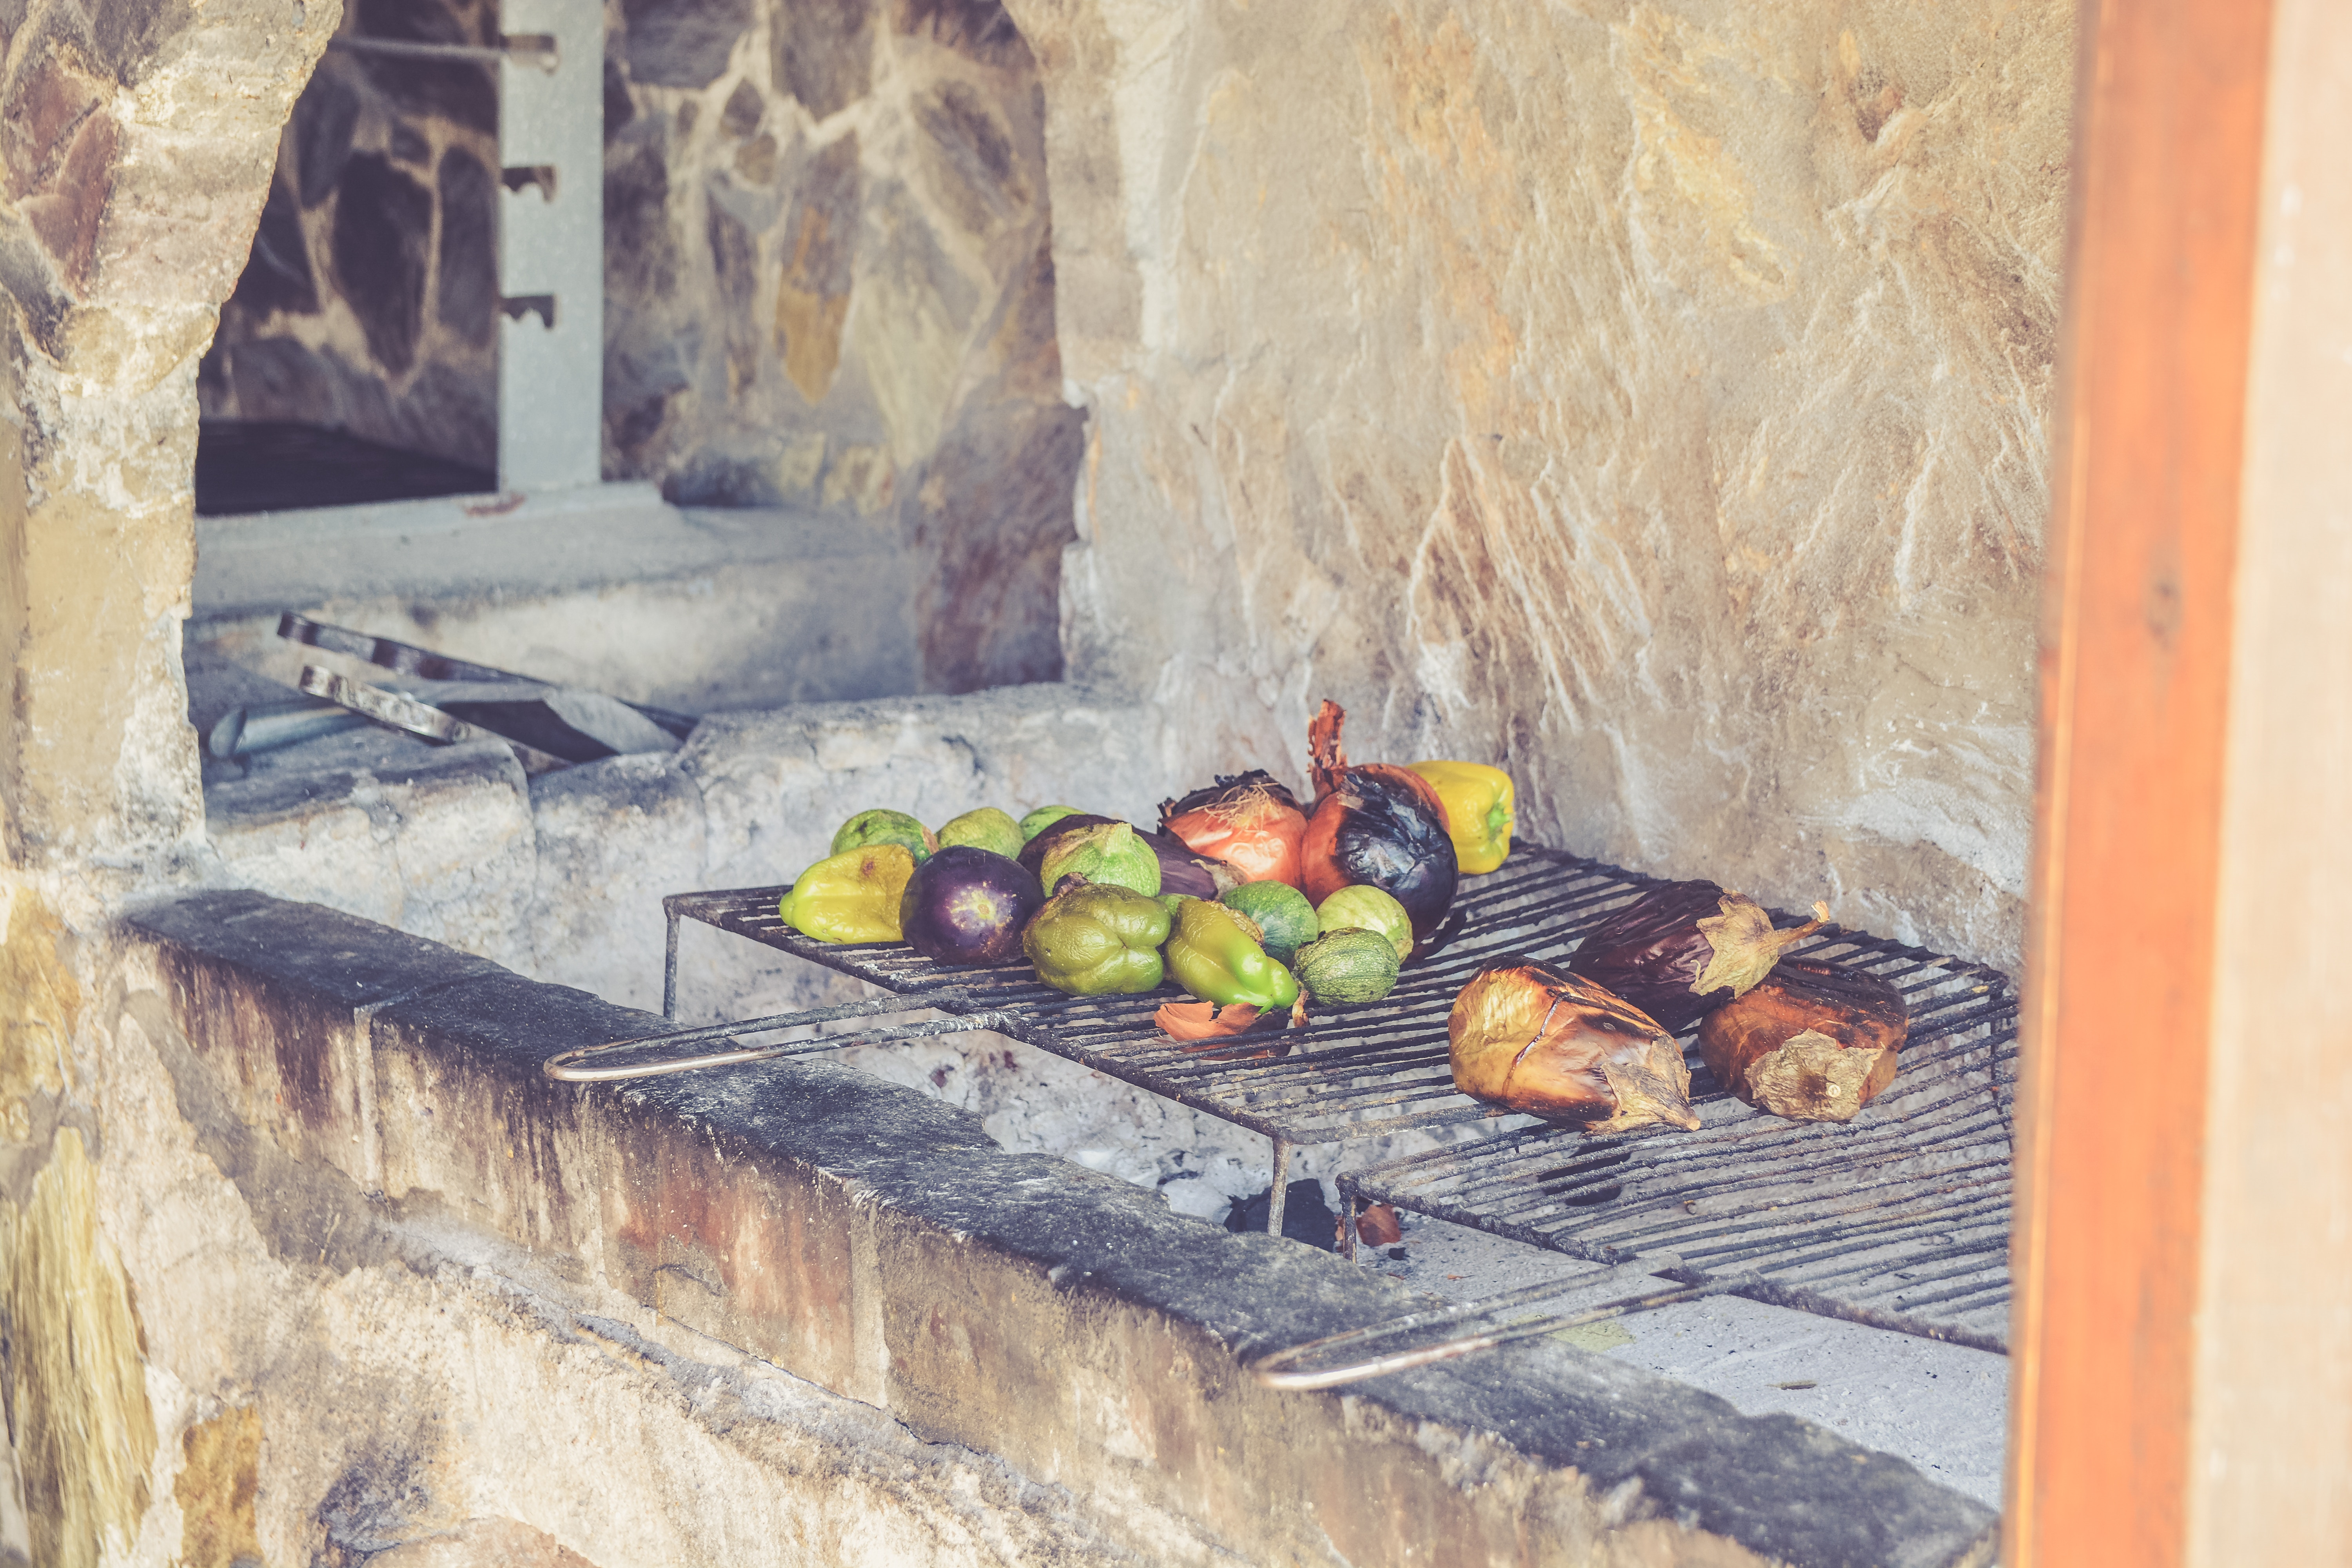 Image of grilling food